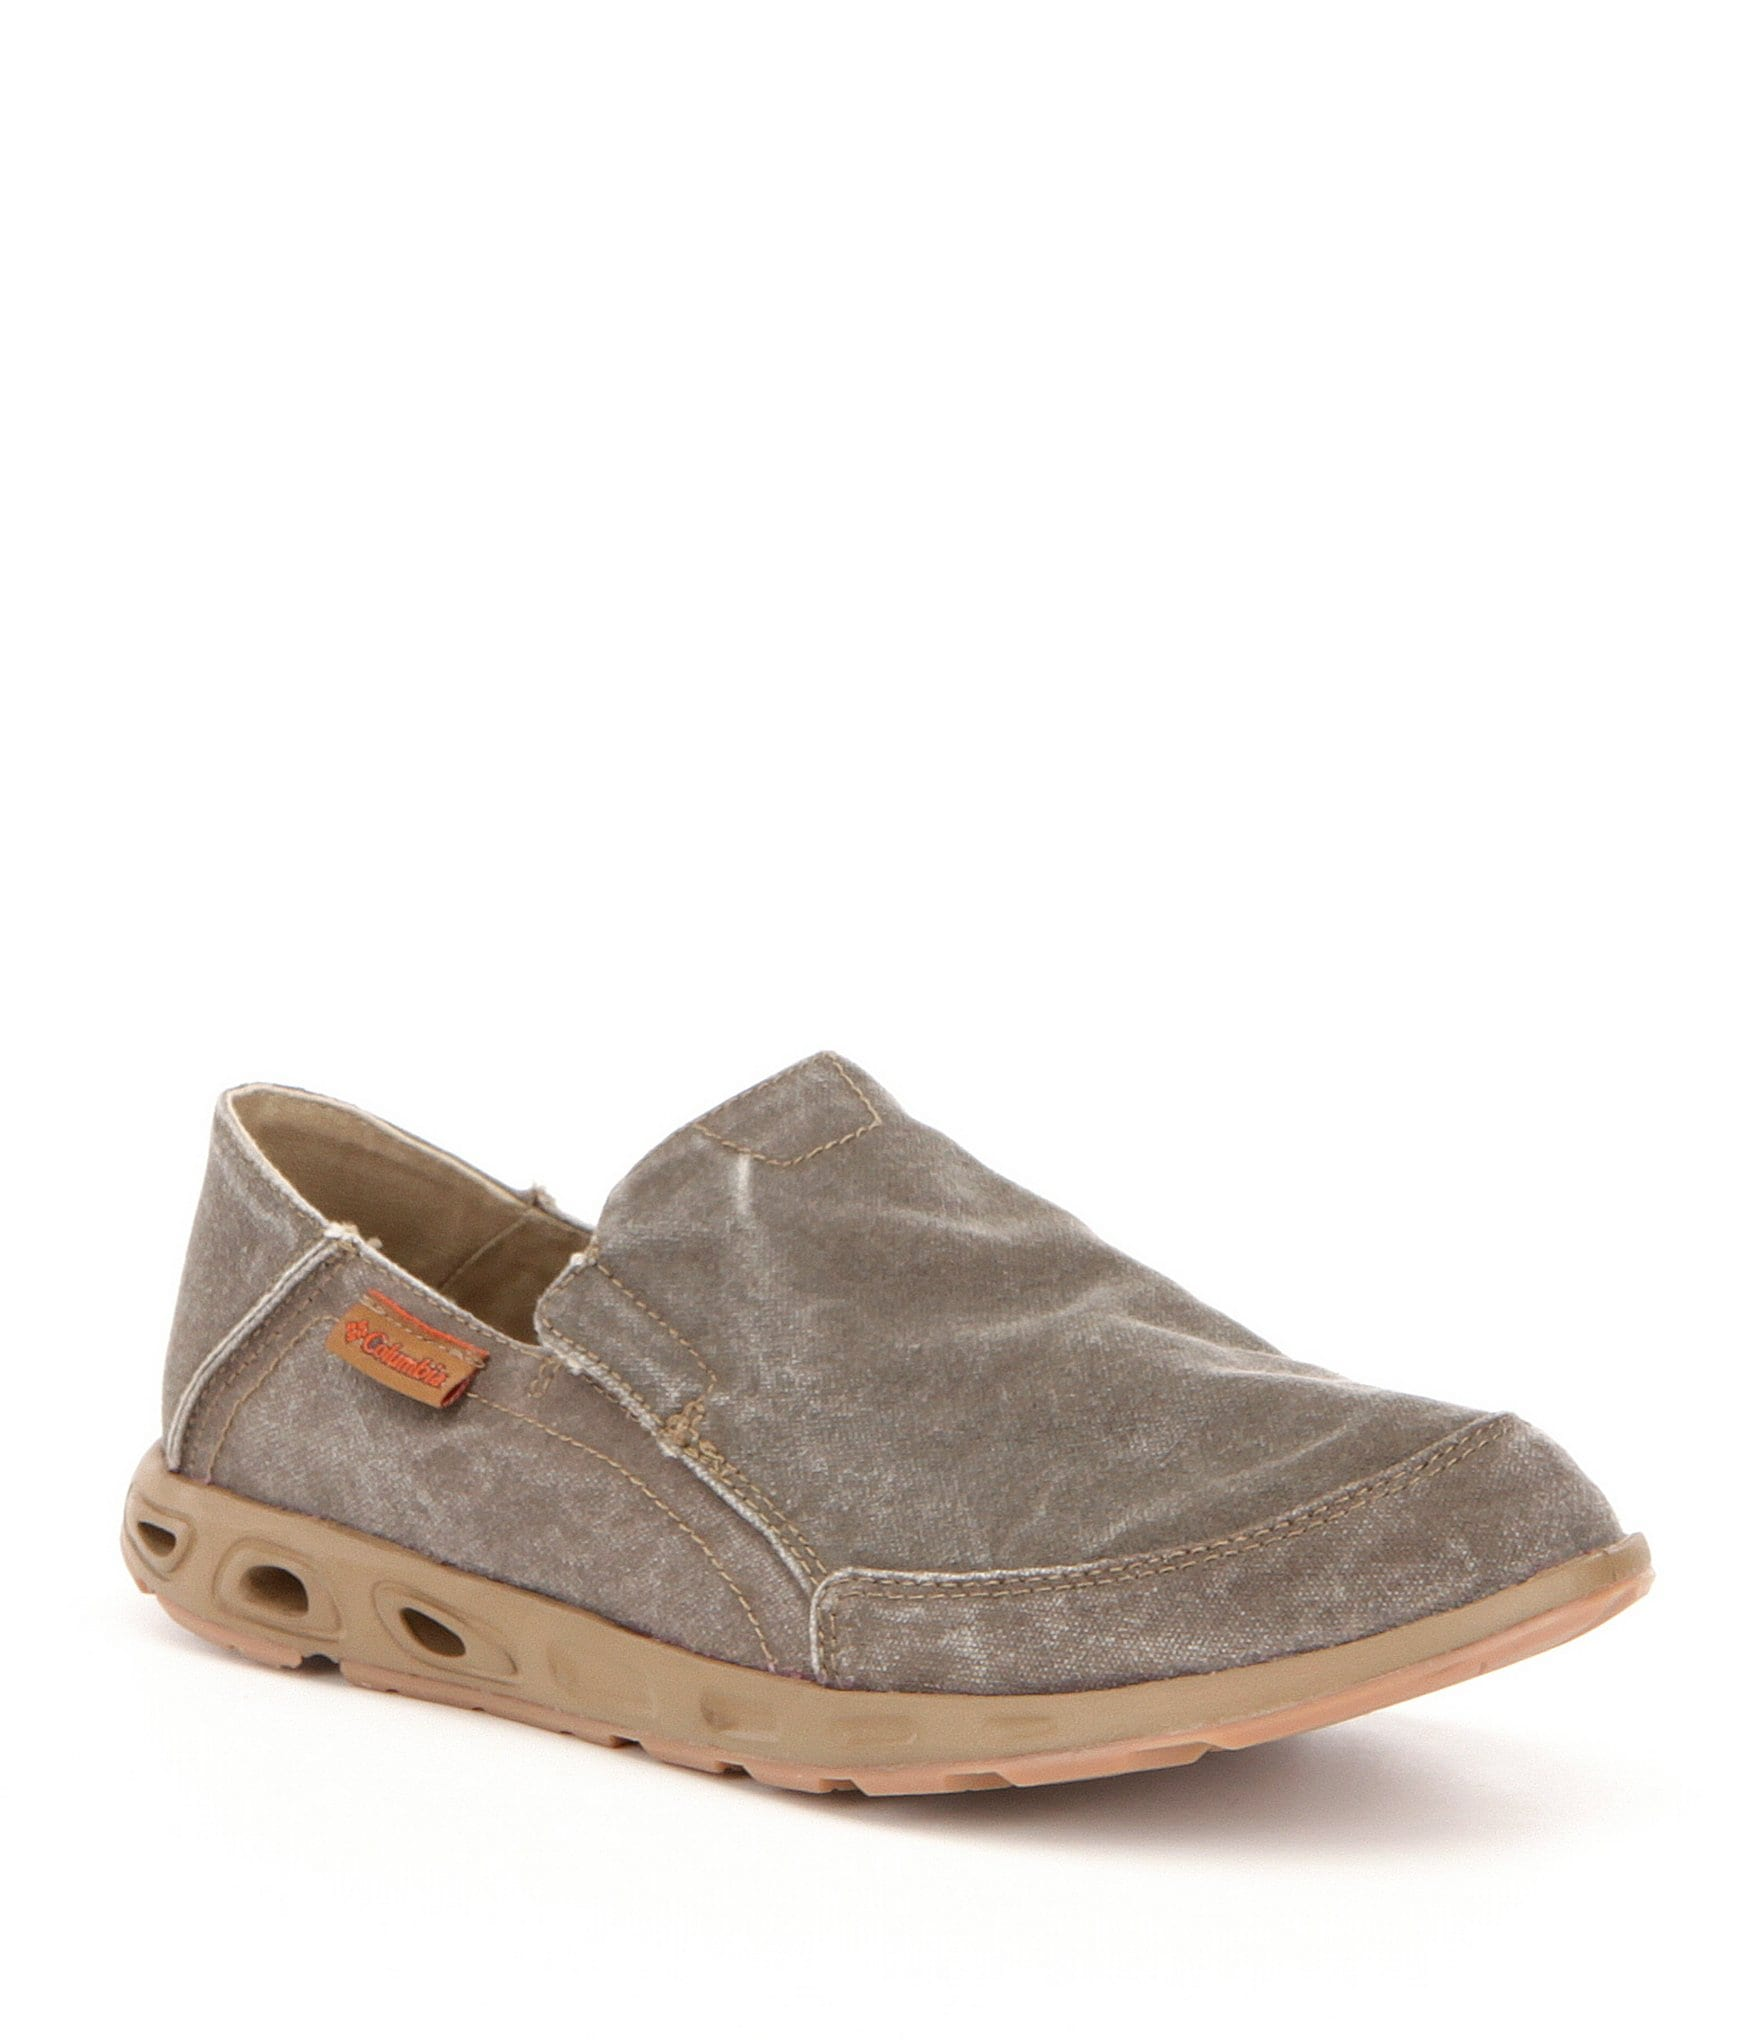 columbia sunvent boat shoes dillards